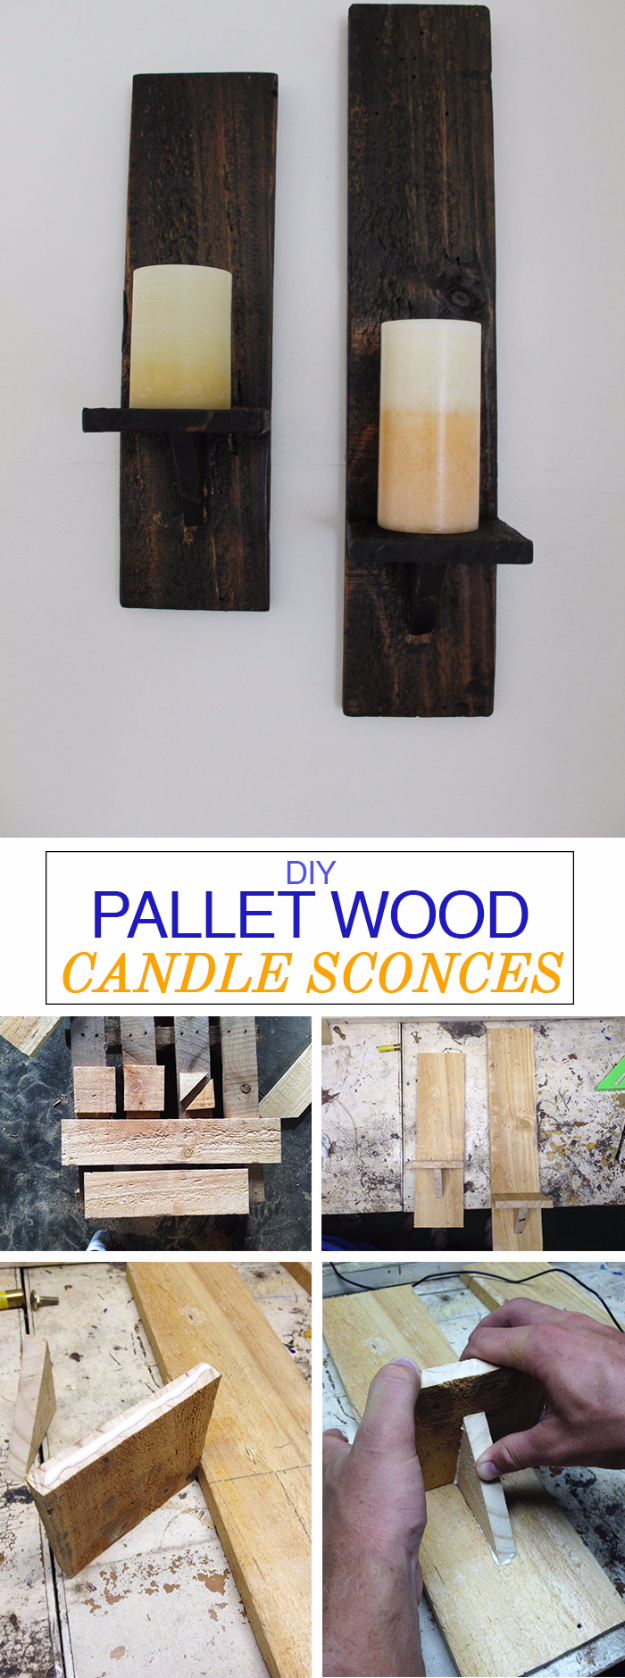 Best DIY Pallet Furniture Ideas - DIY Pallet Wood Candle Sconces - Cool Pallet Tables, Sofas, End Tables, Coffee Table, Bookcases, Wine Rack, Beds and Shelves - Rustic Wooden Pallet Furniture Made Easy With Step by Step Tutorials - Quick DIY Projects and Crafts by DIY Joy